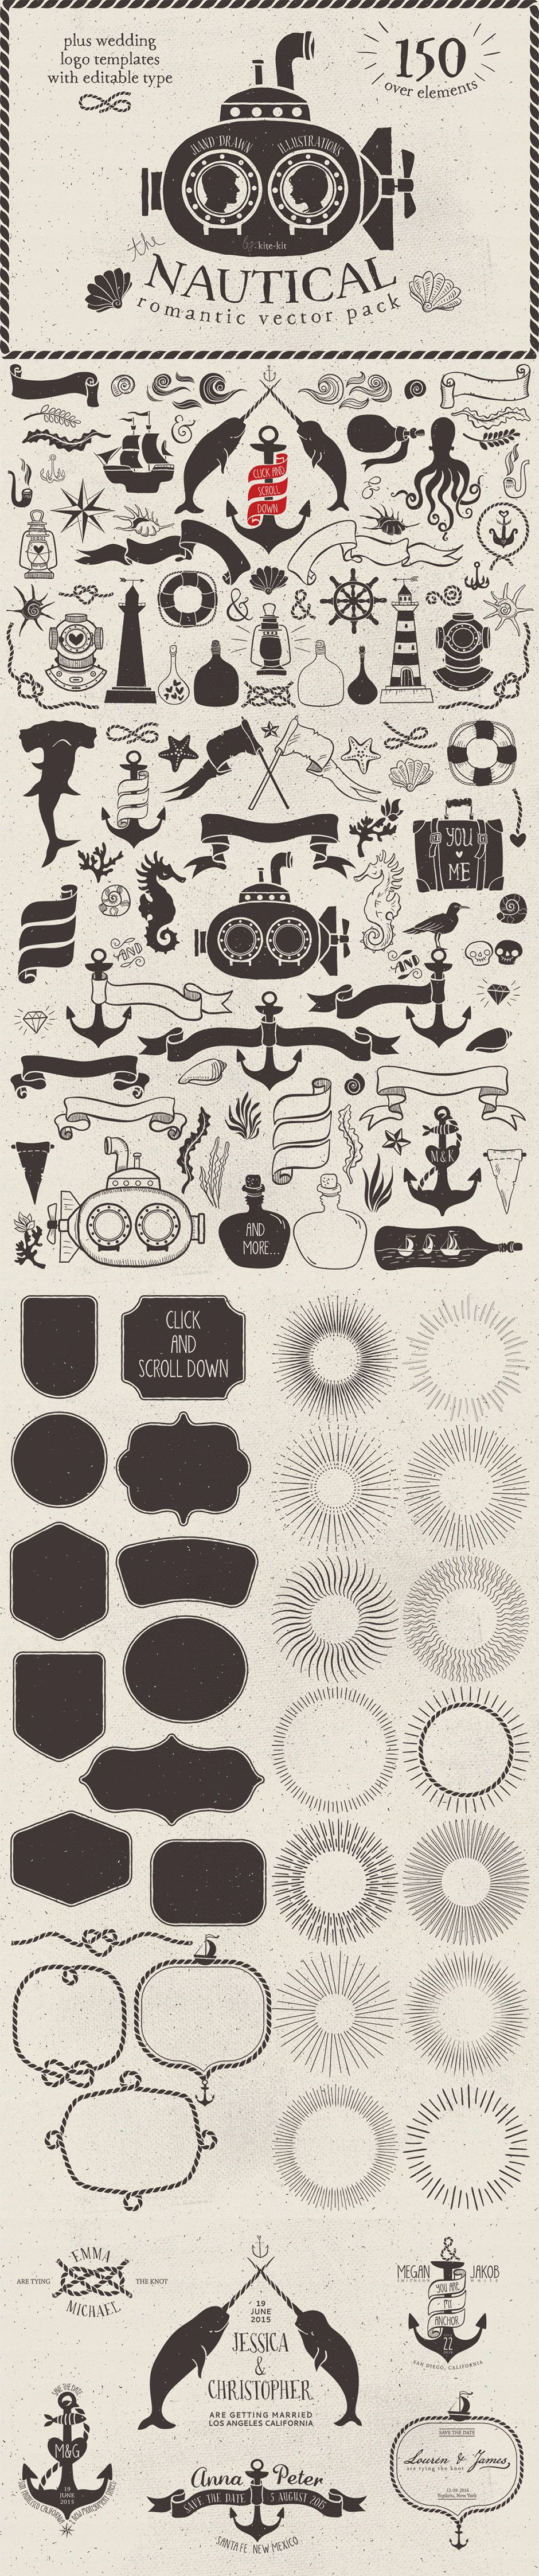 Nautical Romantic Vector Pack by Kite Kit | The Comprehensive, Creative Vectors…